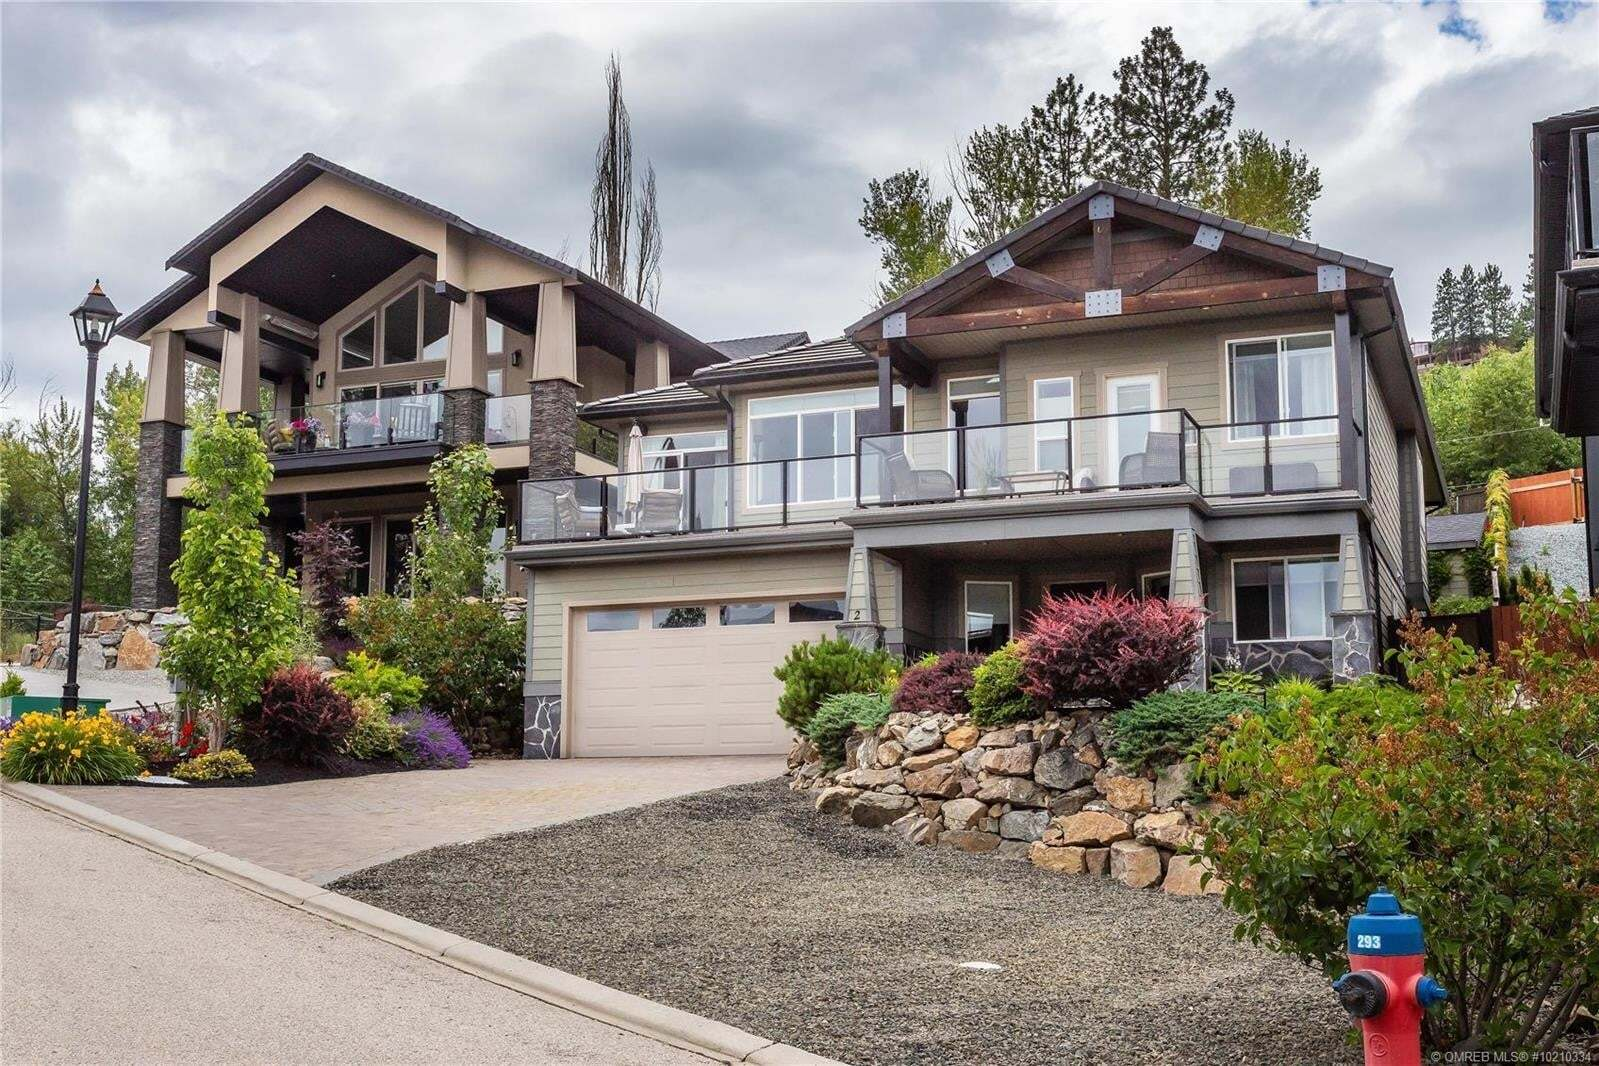 House for sale at 6267 Sundstrom Ct Peachland British Columbia - MLS: 10210334